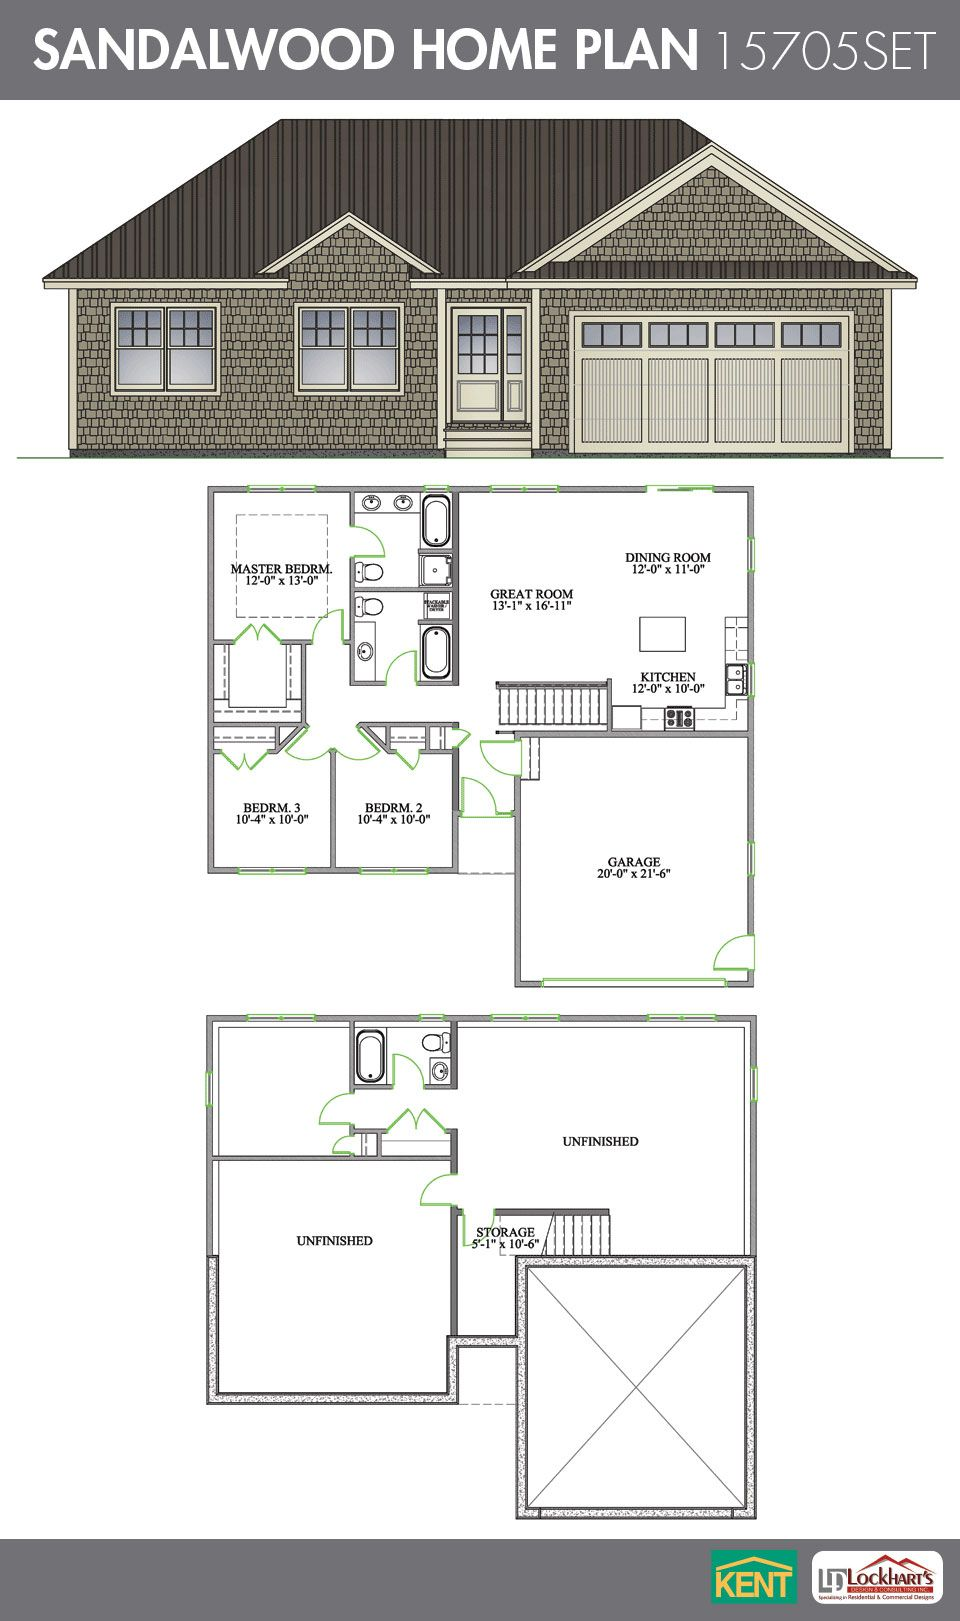 Sandalwood 4 Bedroom 3 Bath Home Plan Features Open Concept Living Kitchen Dining Room A